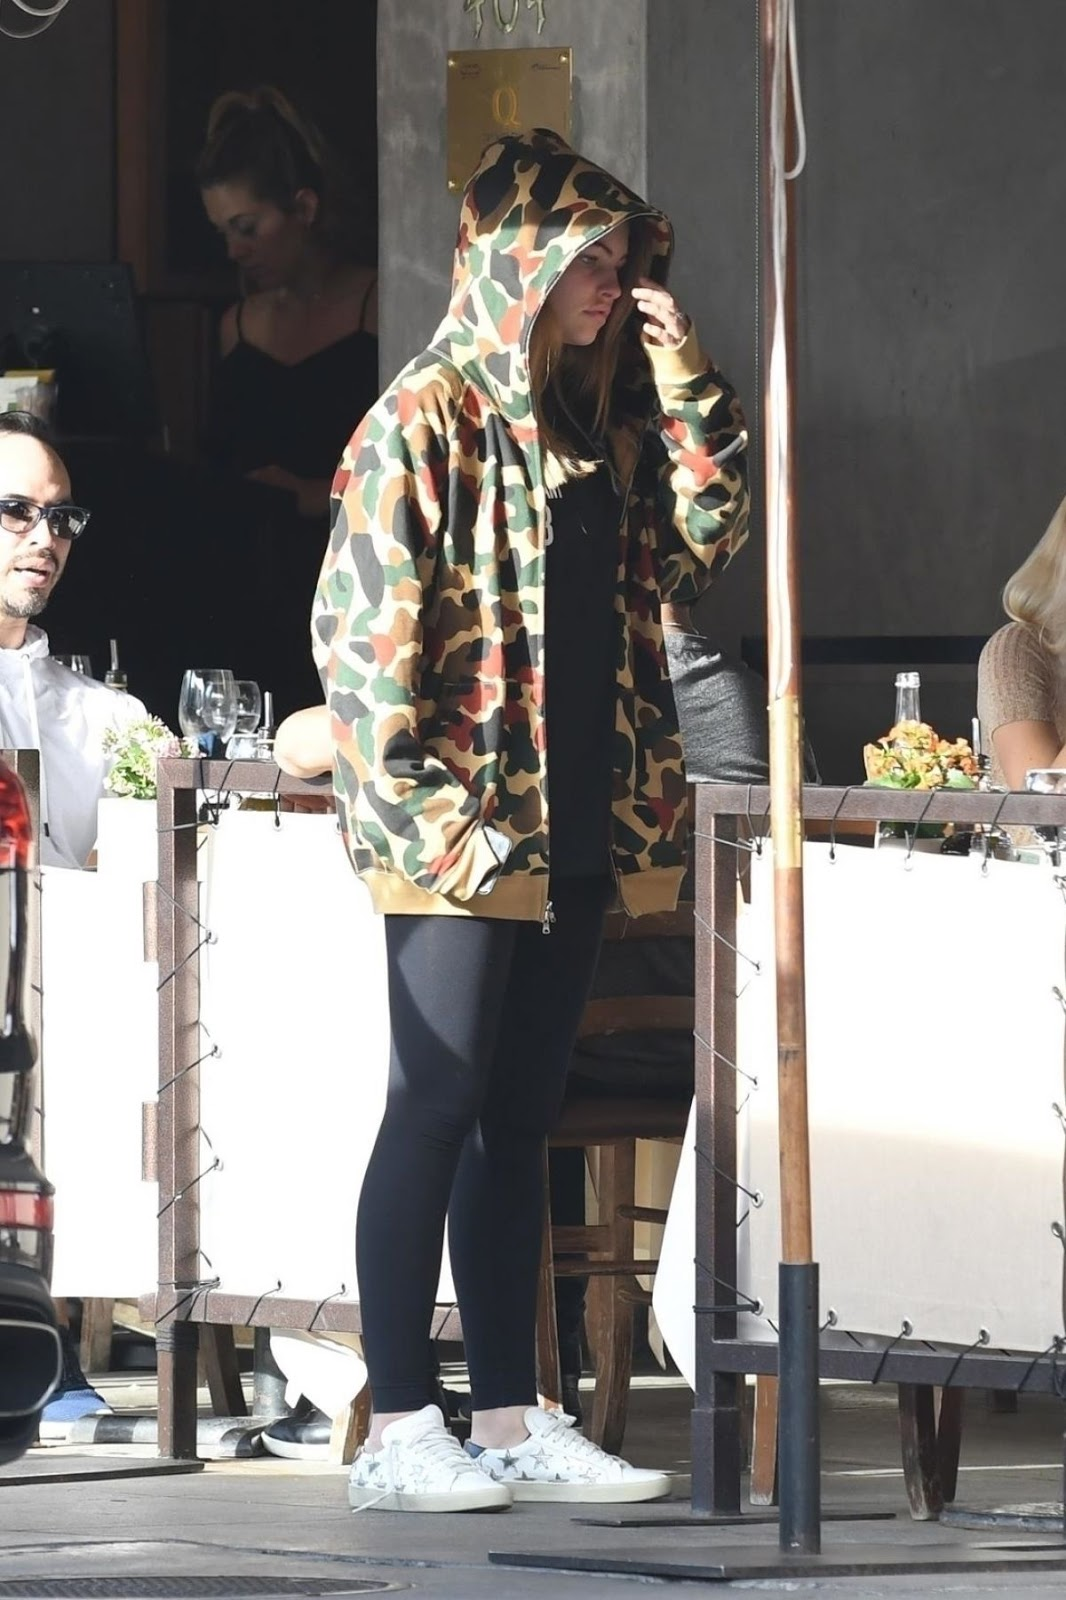 Photos of Thylane Blondeau wearing hood at Pastaio for meal at Beverly Hills